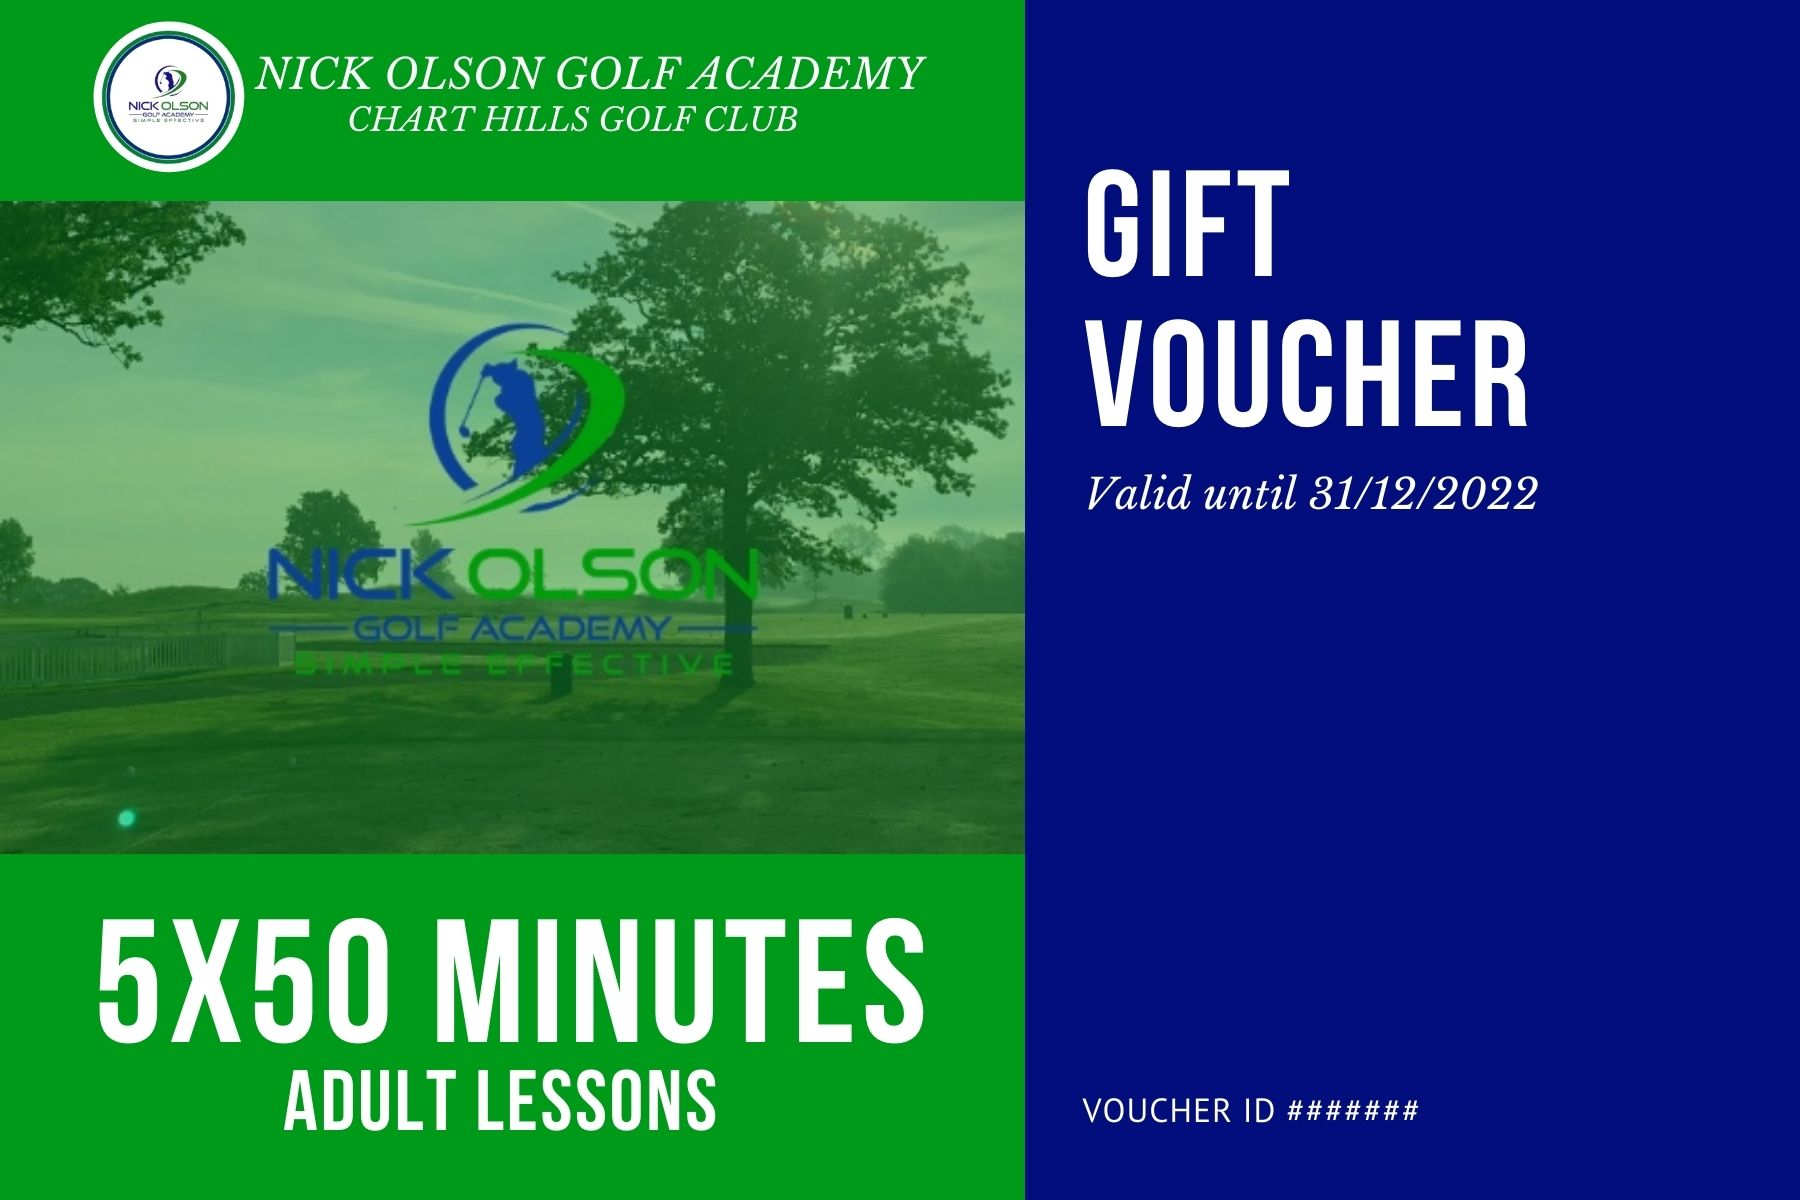 ADULT 5x50 MINUTE GOLF LESSONS